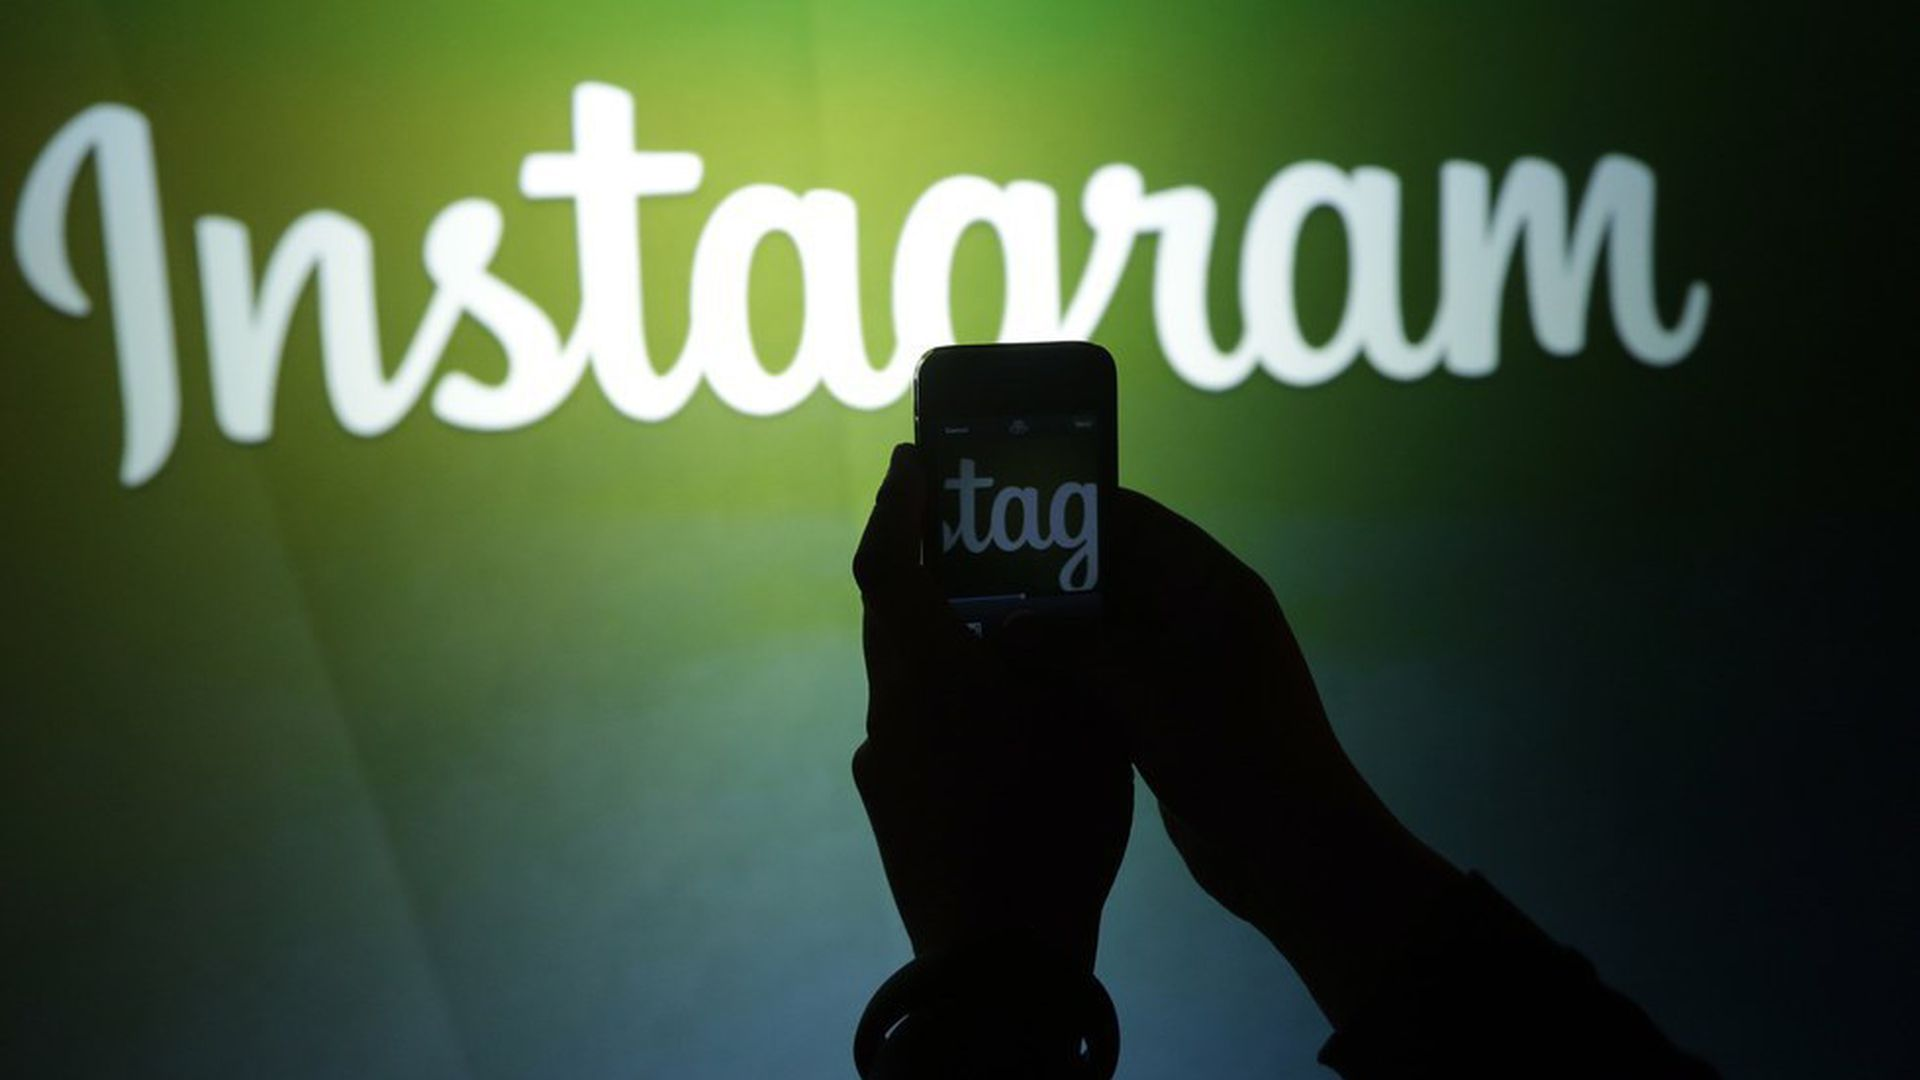 25 million businesses now use Instagram